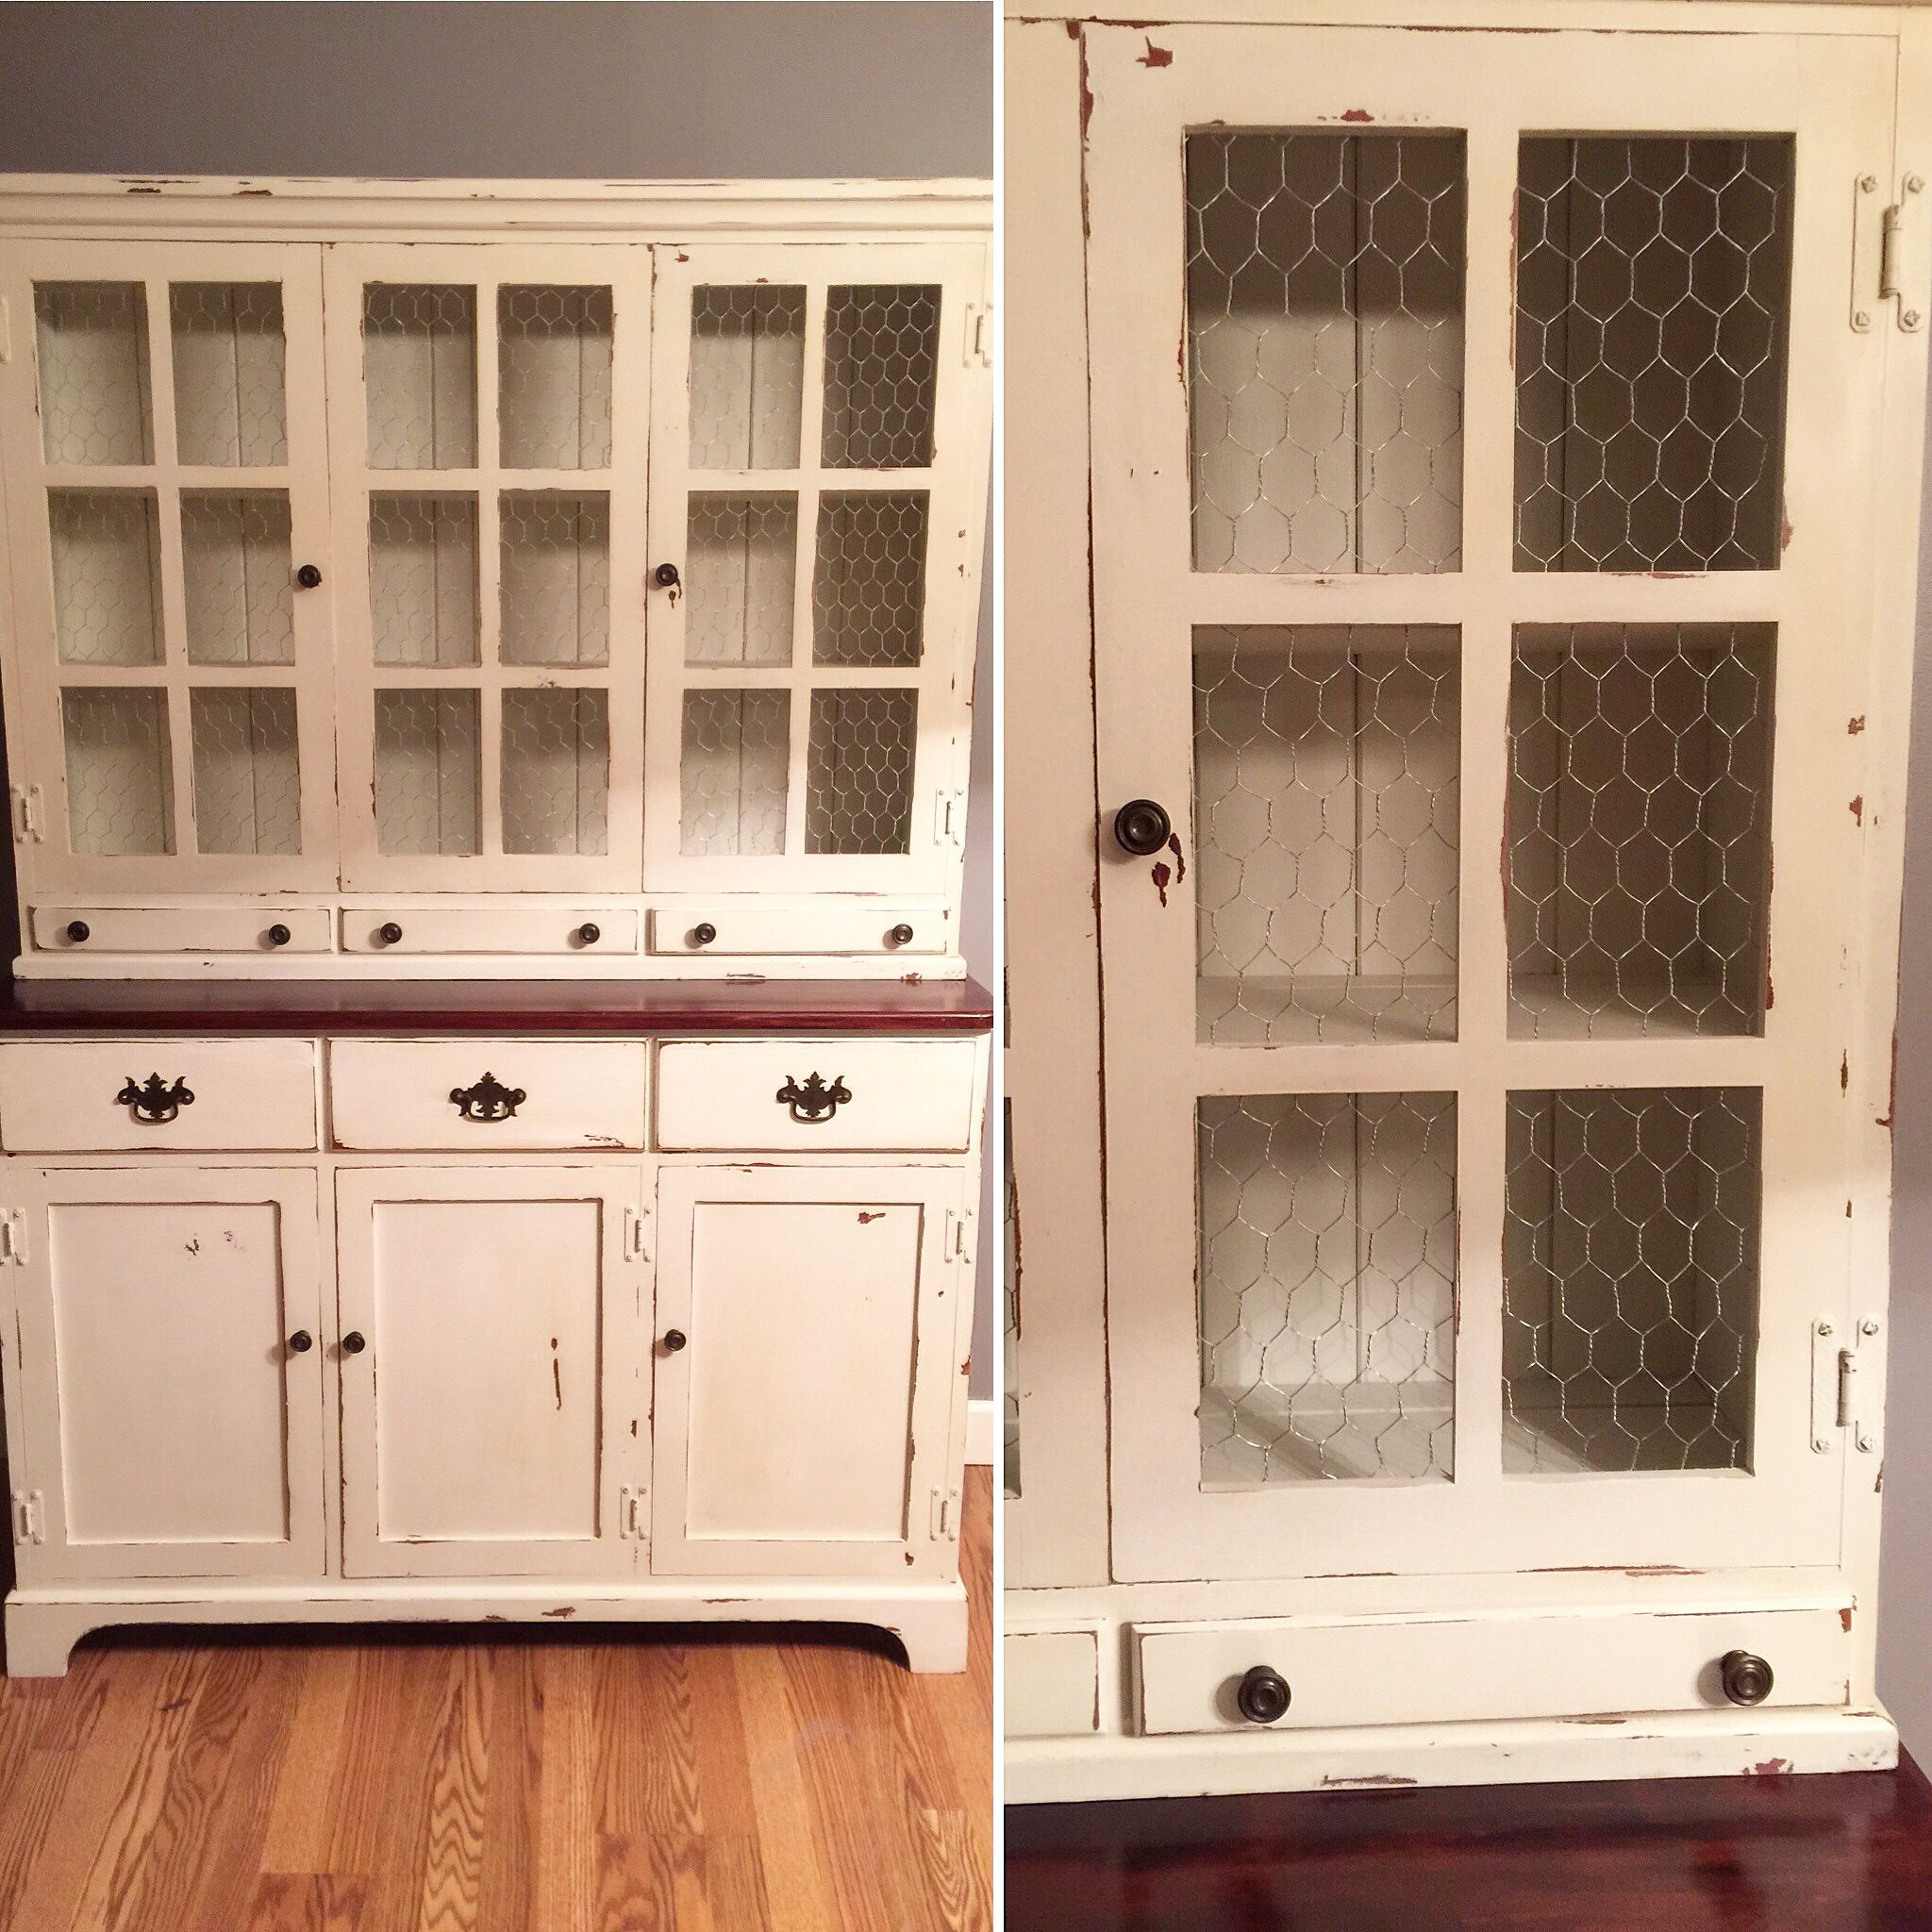 China Hutch Chicken Wire Doors Window Chalkpainted Valspar Chalky Finish Paint Her Dainties